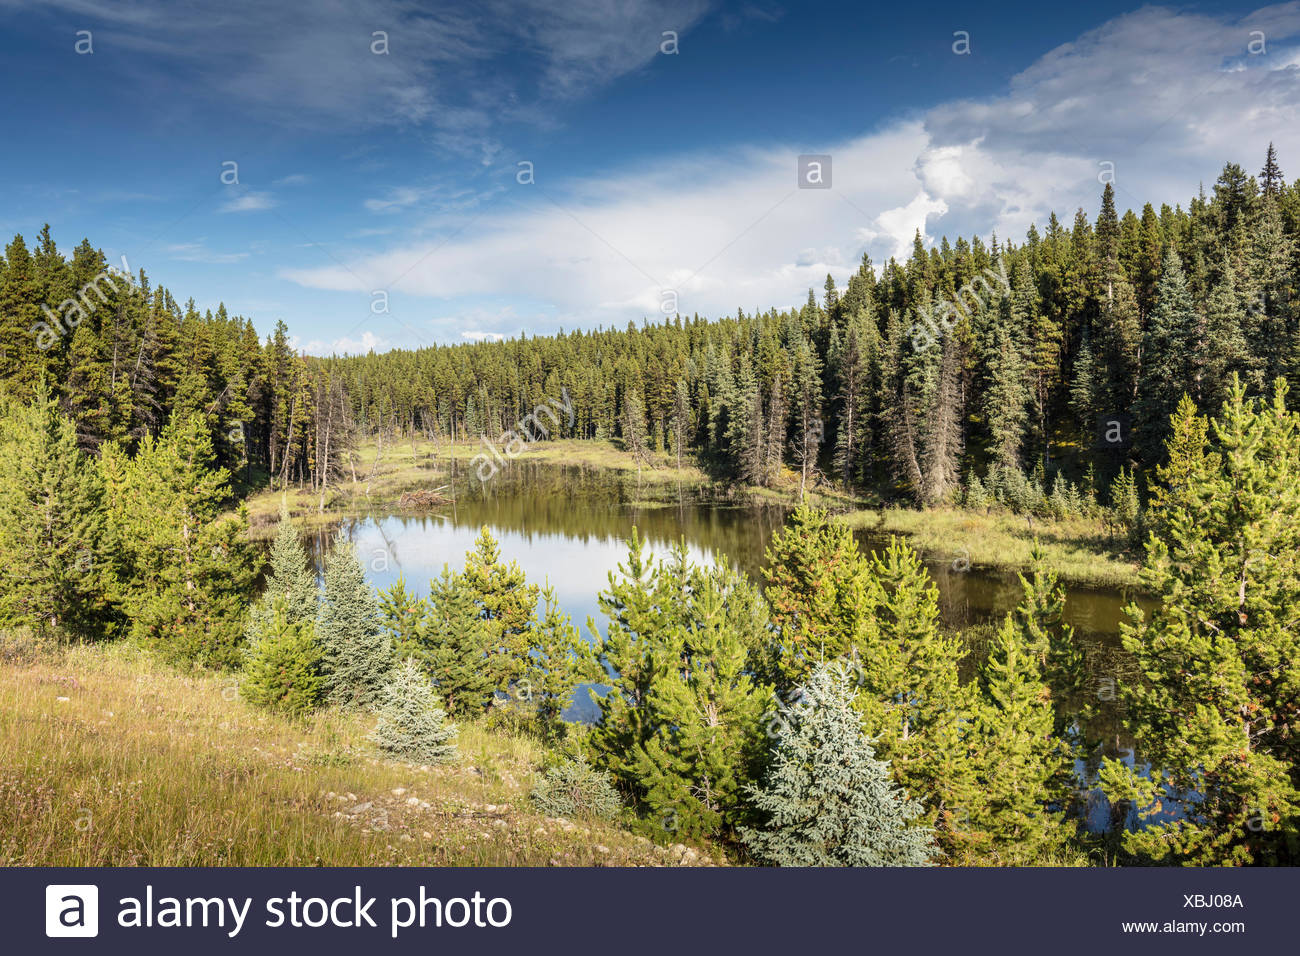 Henderson Creek on the Big Horn Route in Alberta, Canada - Stock Image